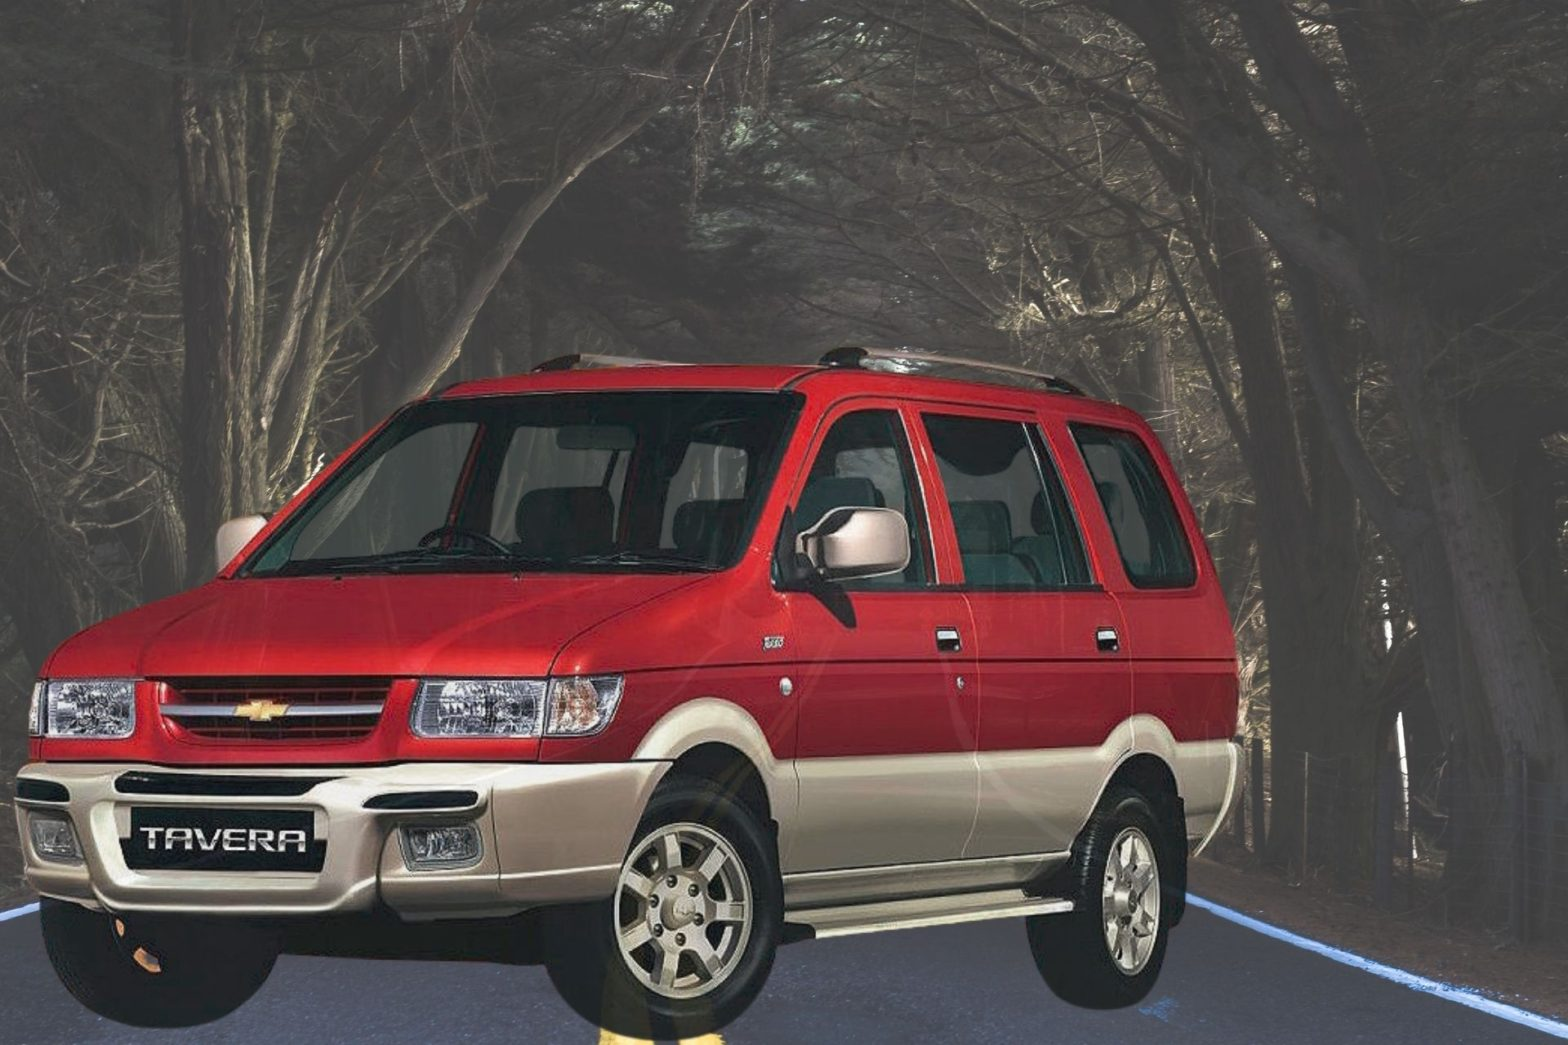 Chevrolet Tavera Car Rental in Hyderabad with Outstation & Local Tariff